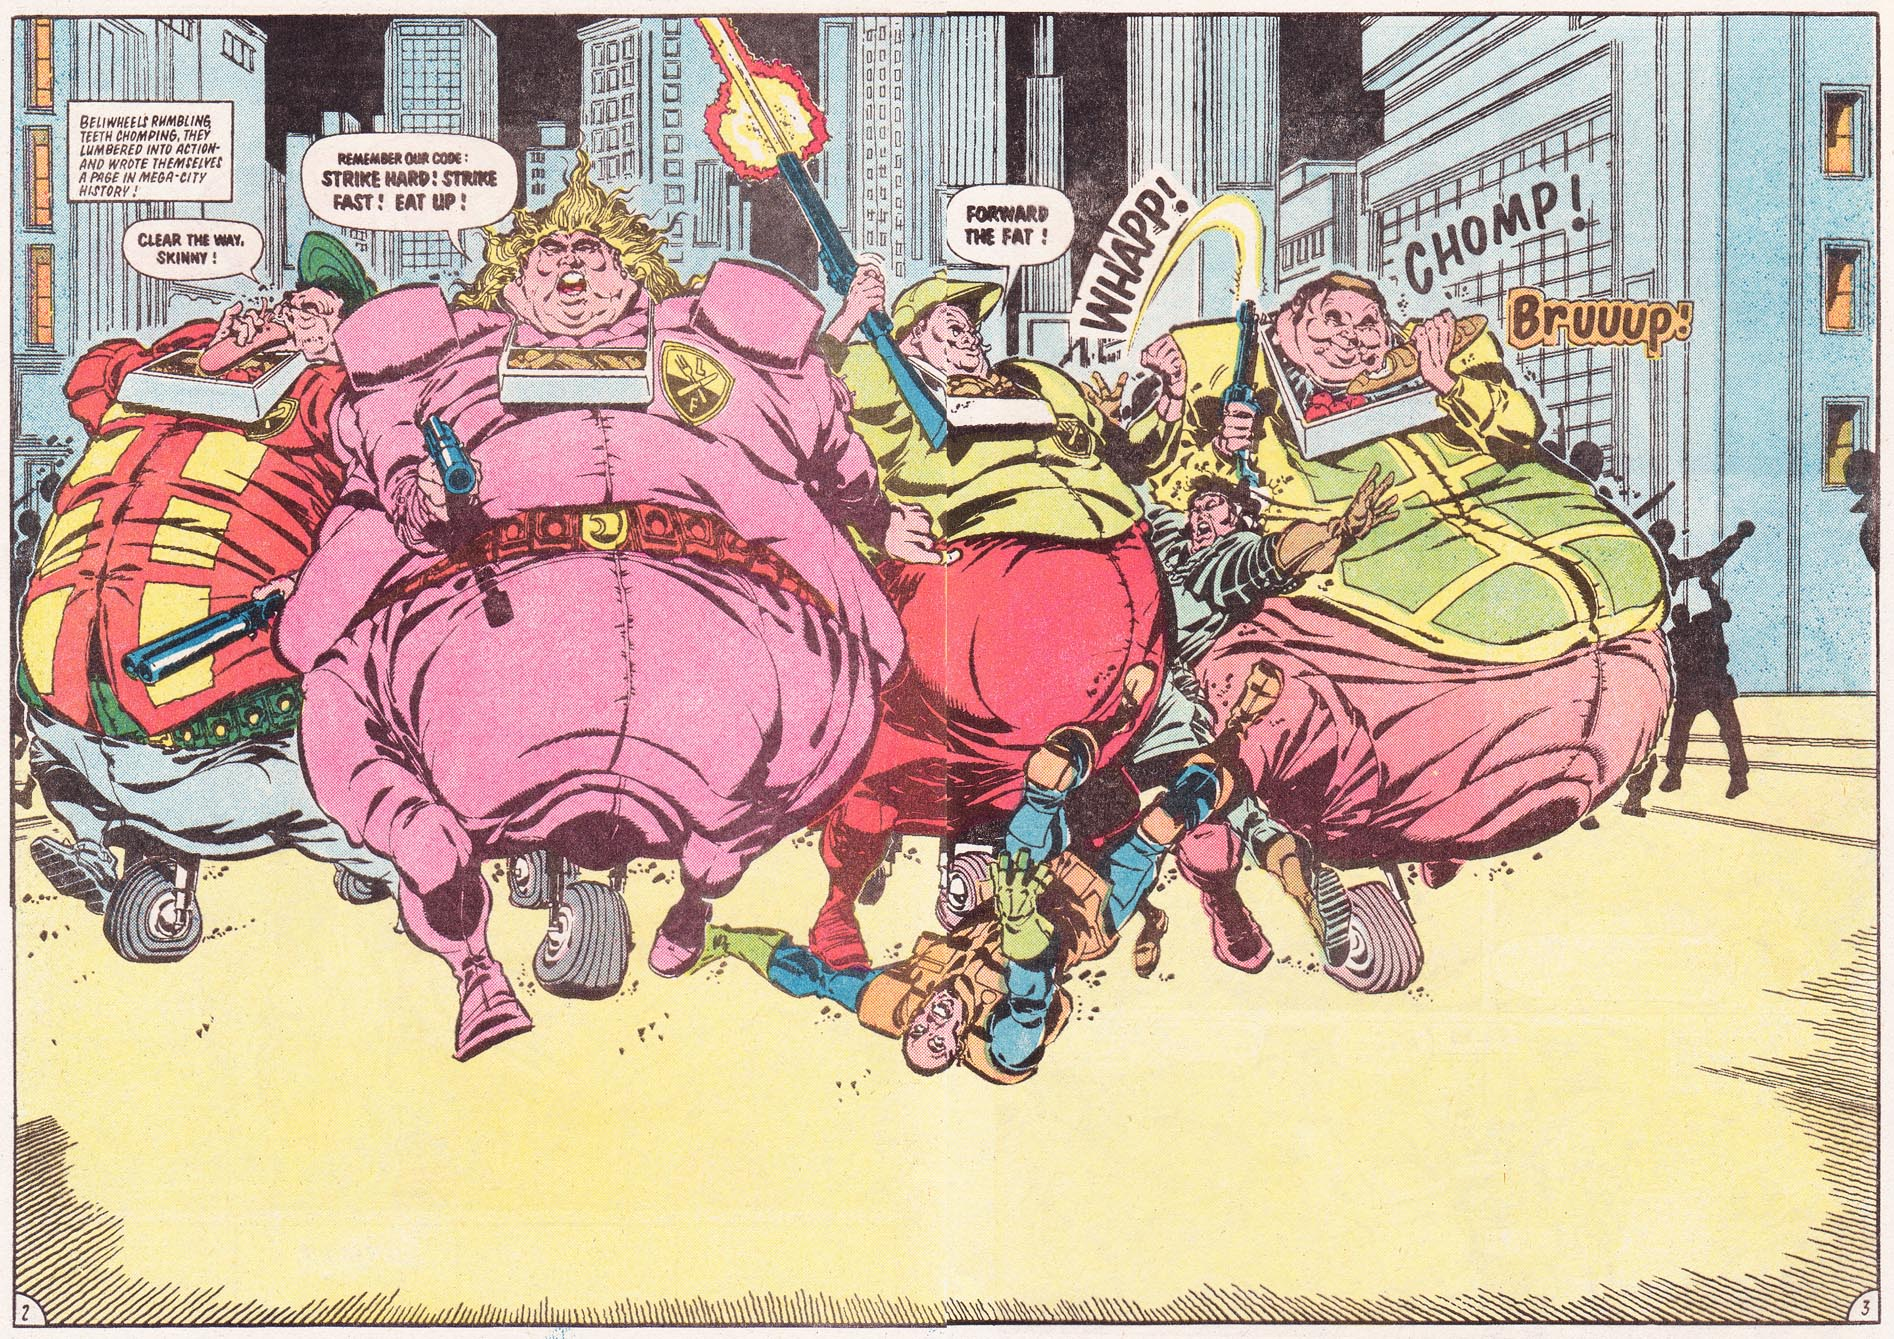 The Fatties - Judge Dredd